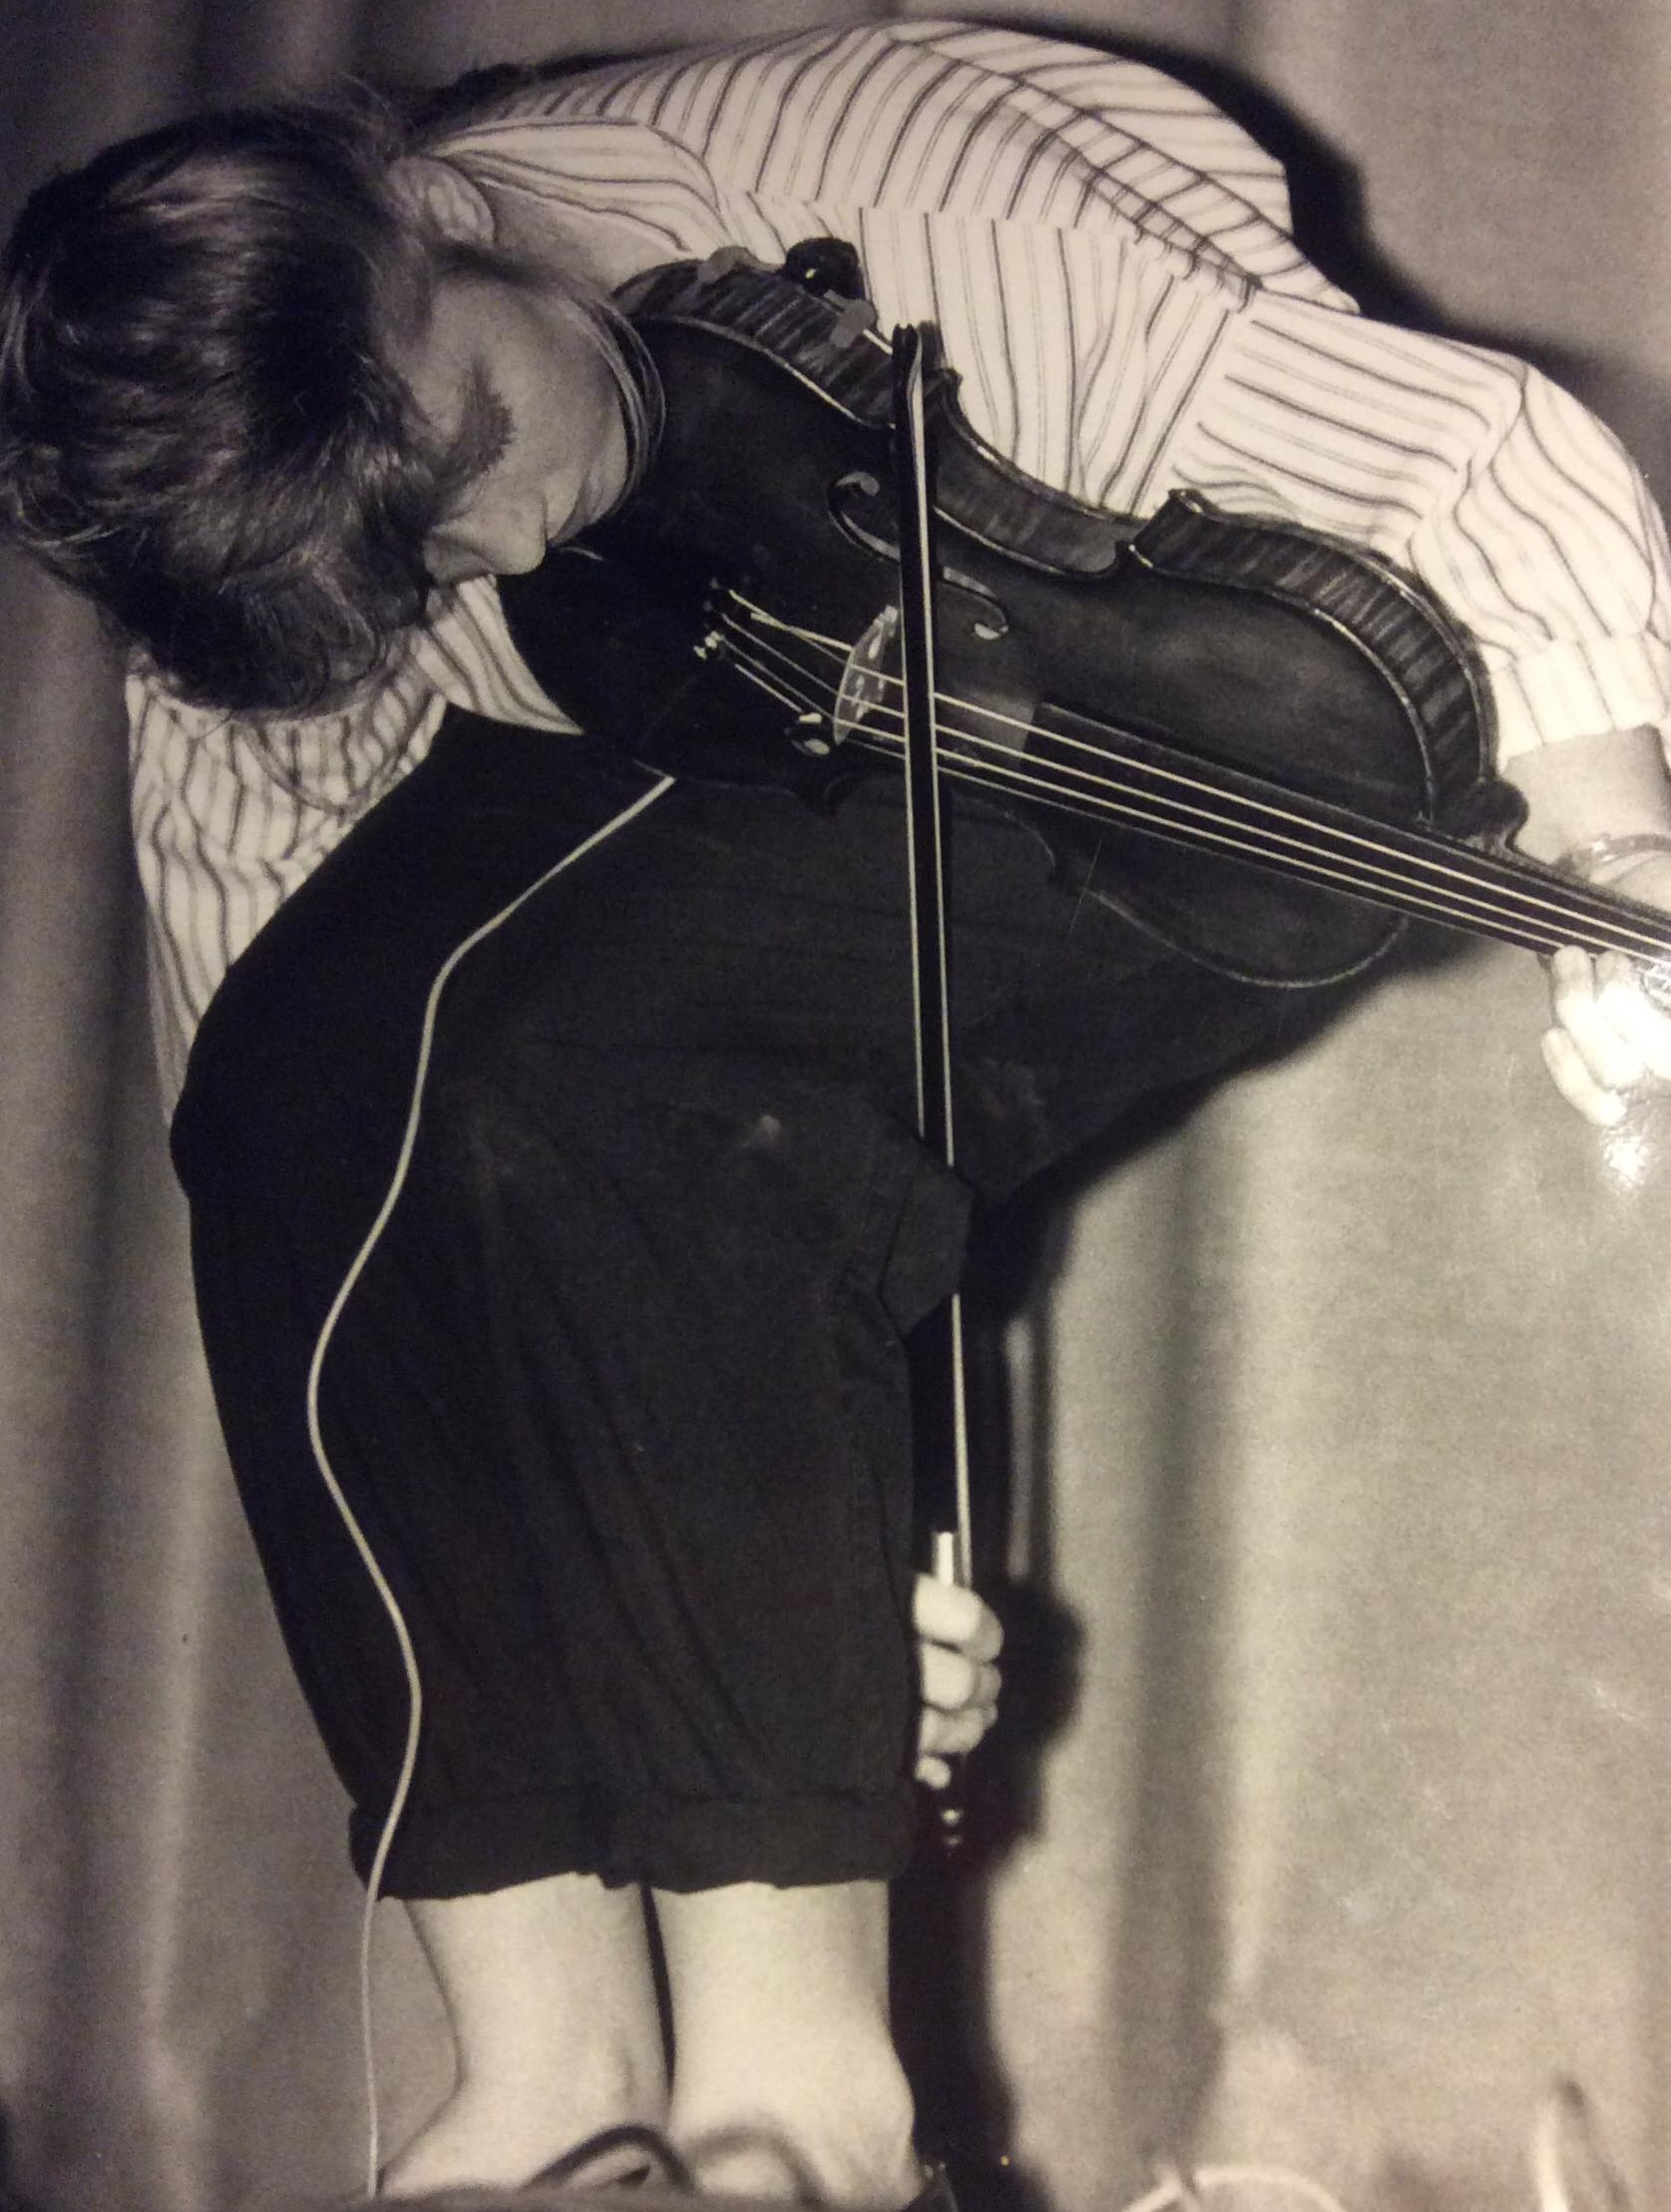 BEHIND LEGS - Keep your fiddle in regular playing position (under your chin) as you bend at the waist and head upside down.Many players elaborate on this position by separating their legs and threading the bow behind their right leg to reach the fiddle in front. Some take it a step further and balance on their left leg while lifting their right leg off the ground and bowing from underneath that leg. Whatever variation you do, be very mindful of your fragile bow while playing behind your legs.PHOTO: Rebecca Koehler, 1989